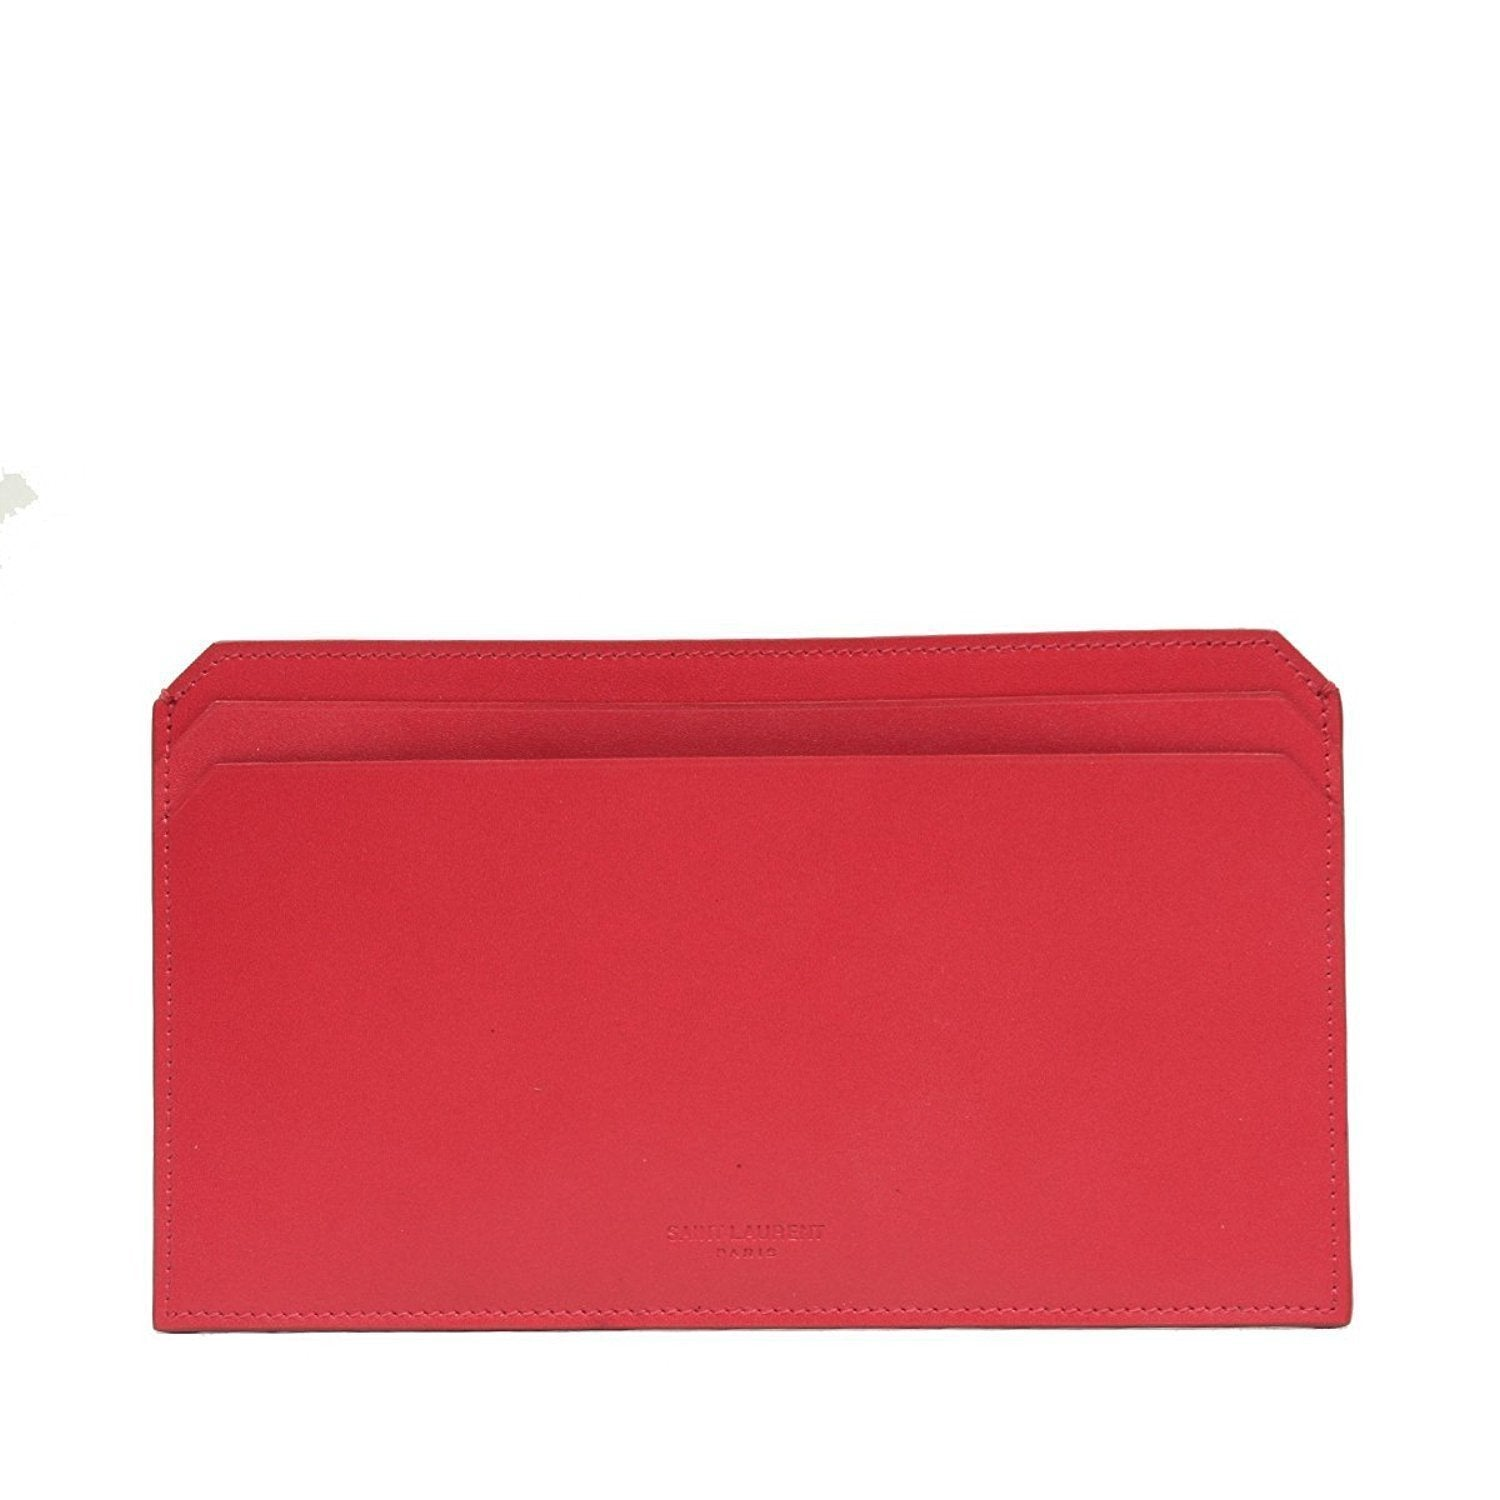 Saint Laurent Women's Lipstick Pink Classic Leather Document Holder 315875